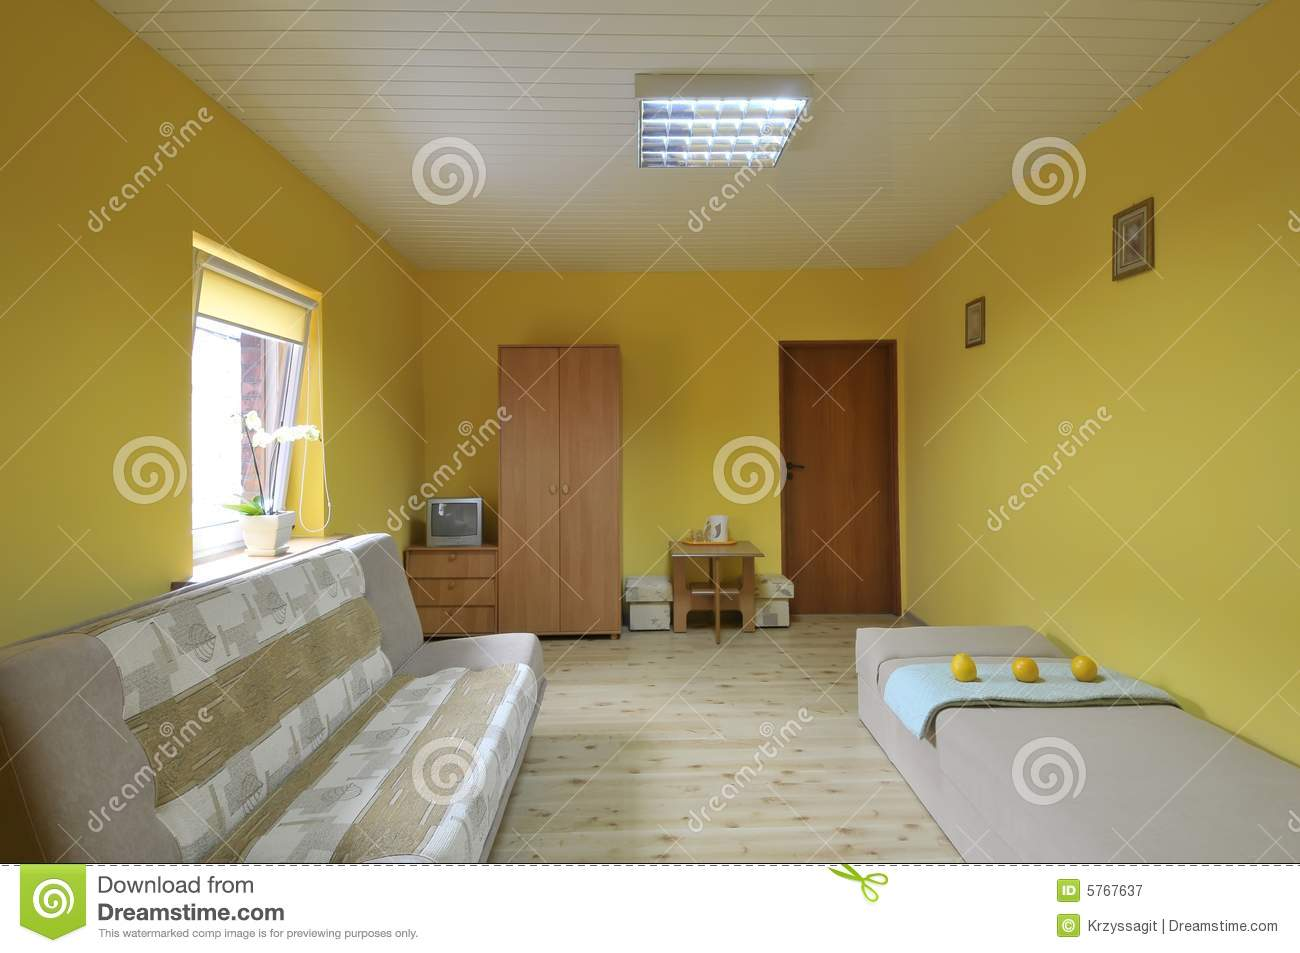 Simple Room Interior Royalty Free Stock Photography